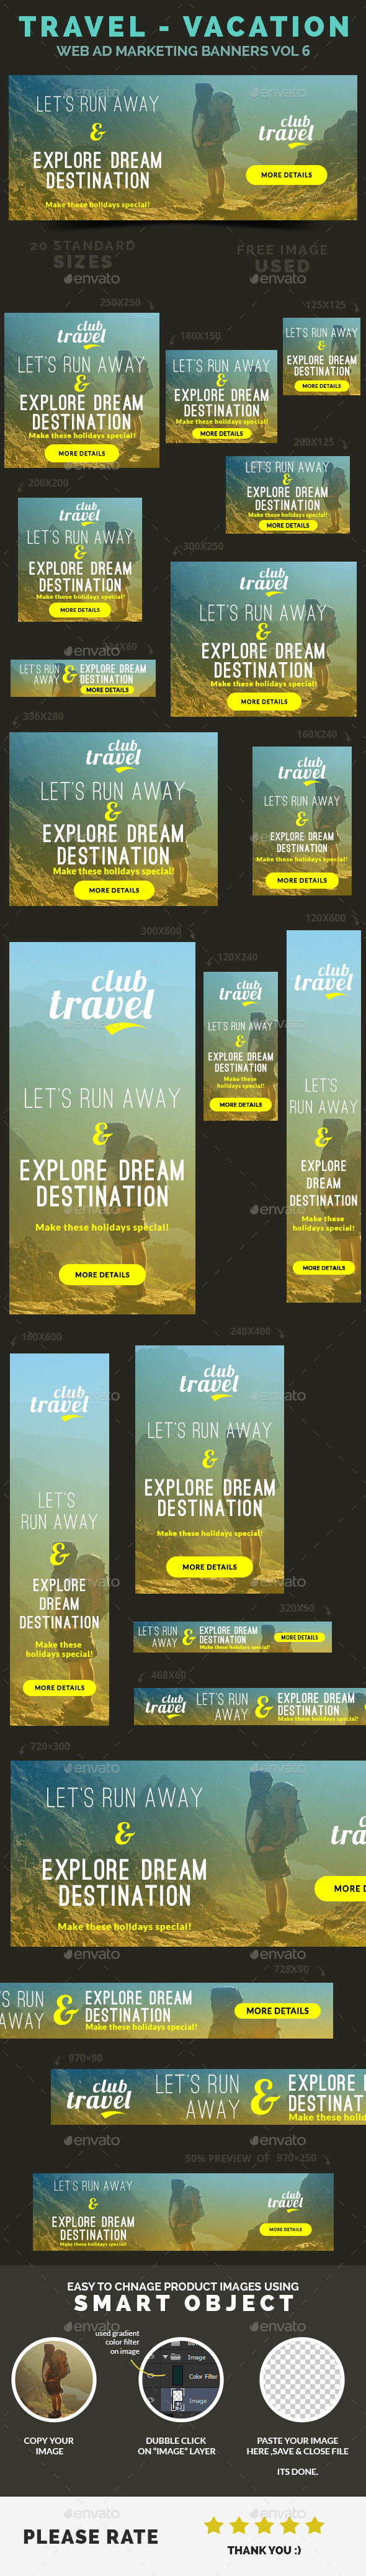 Travel - Vacation Web Ad Marketing Banners Vol 6 - Banners & Ads Web Elements